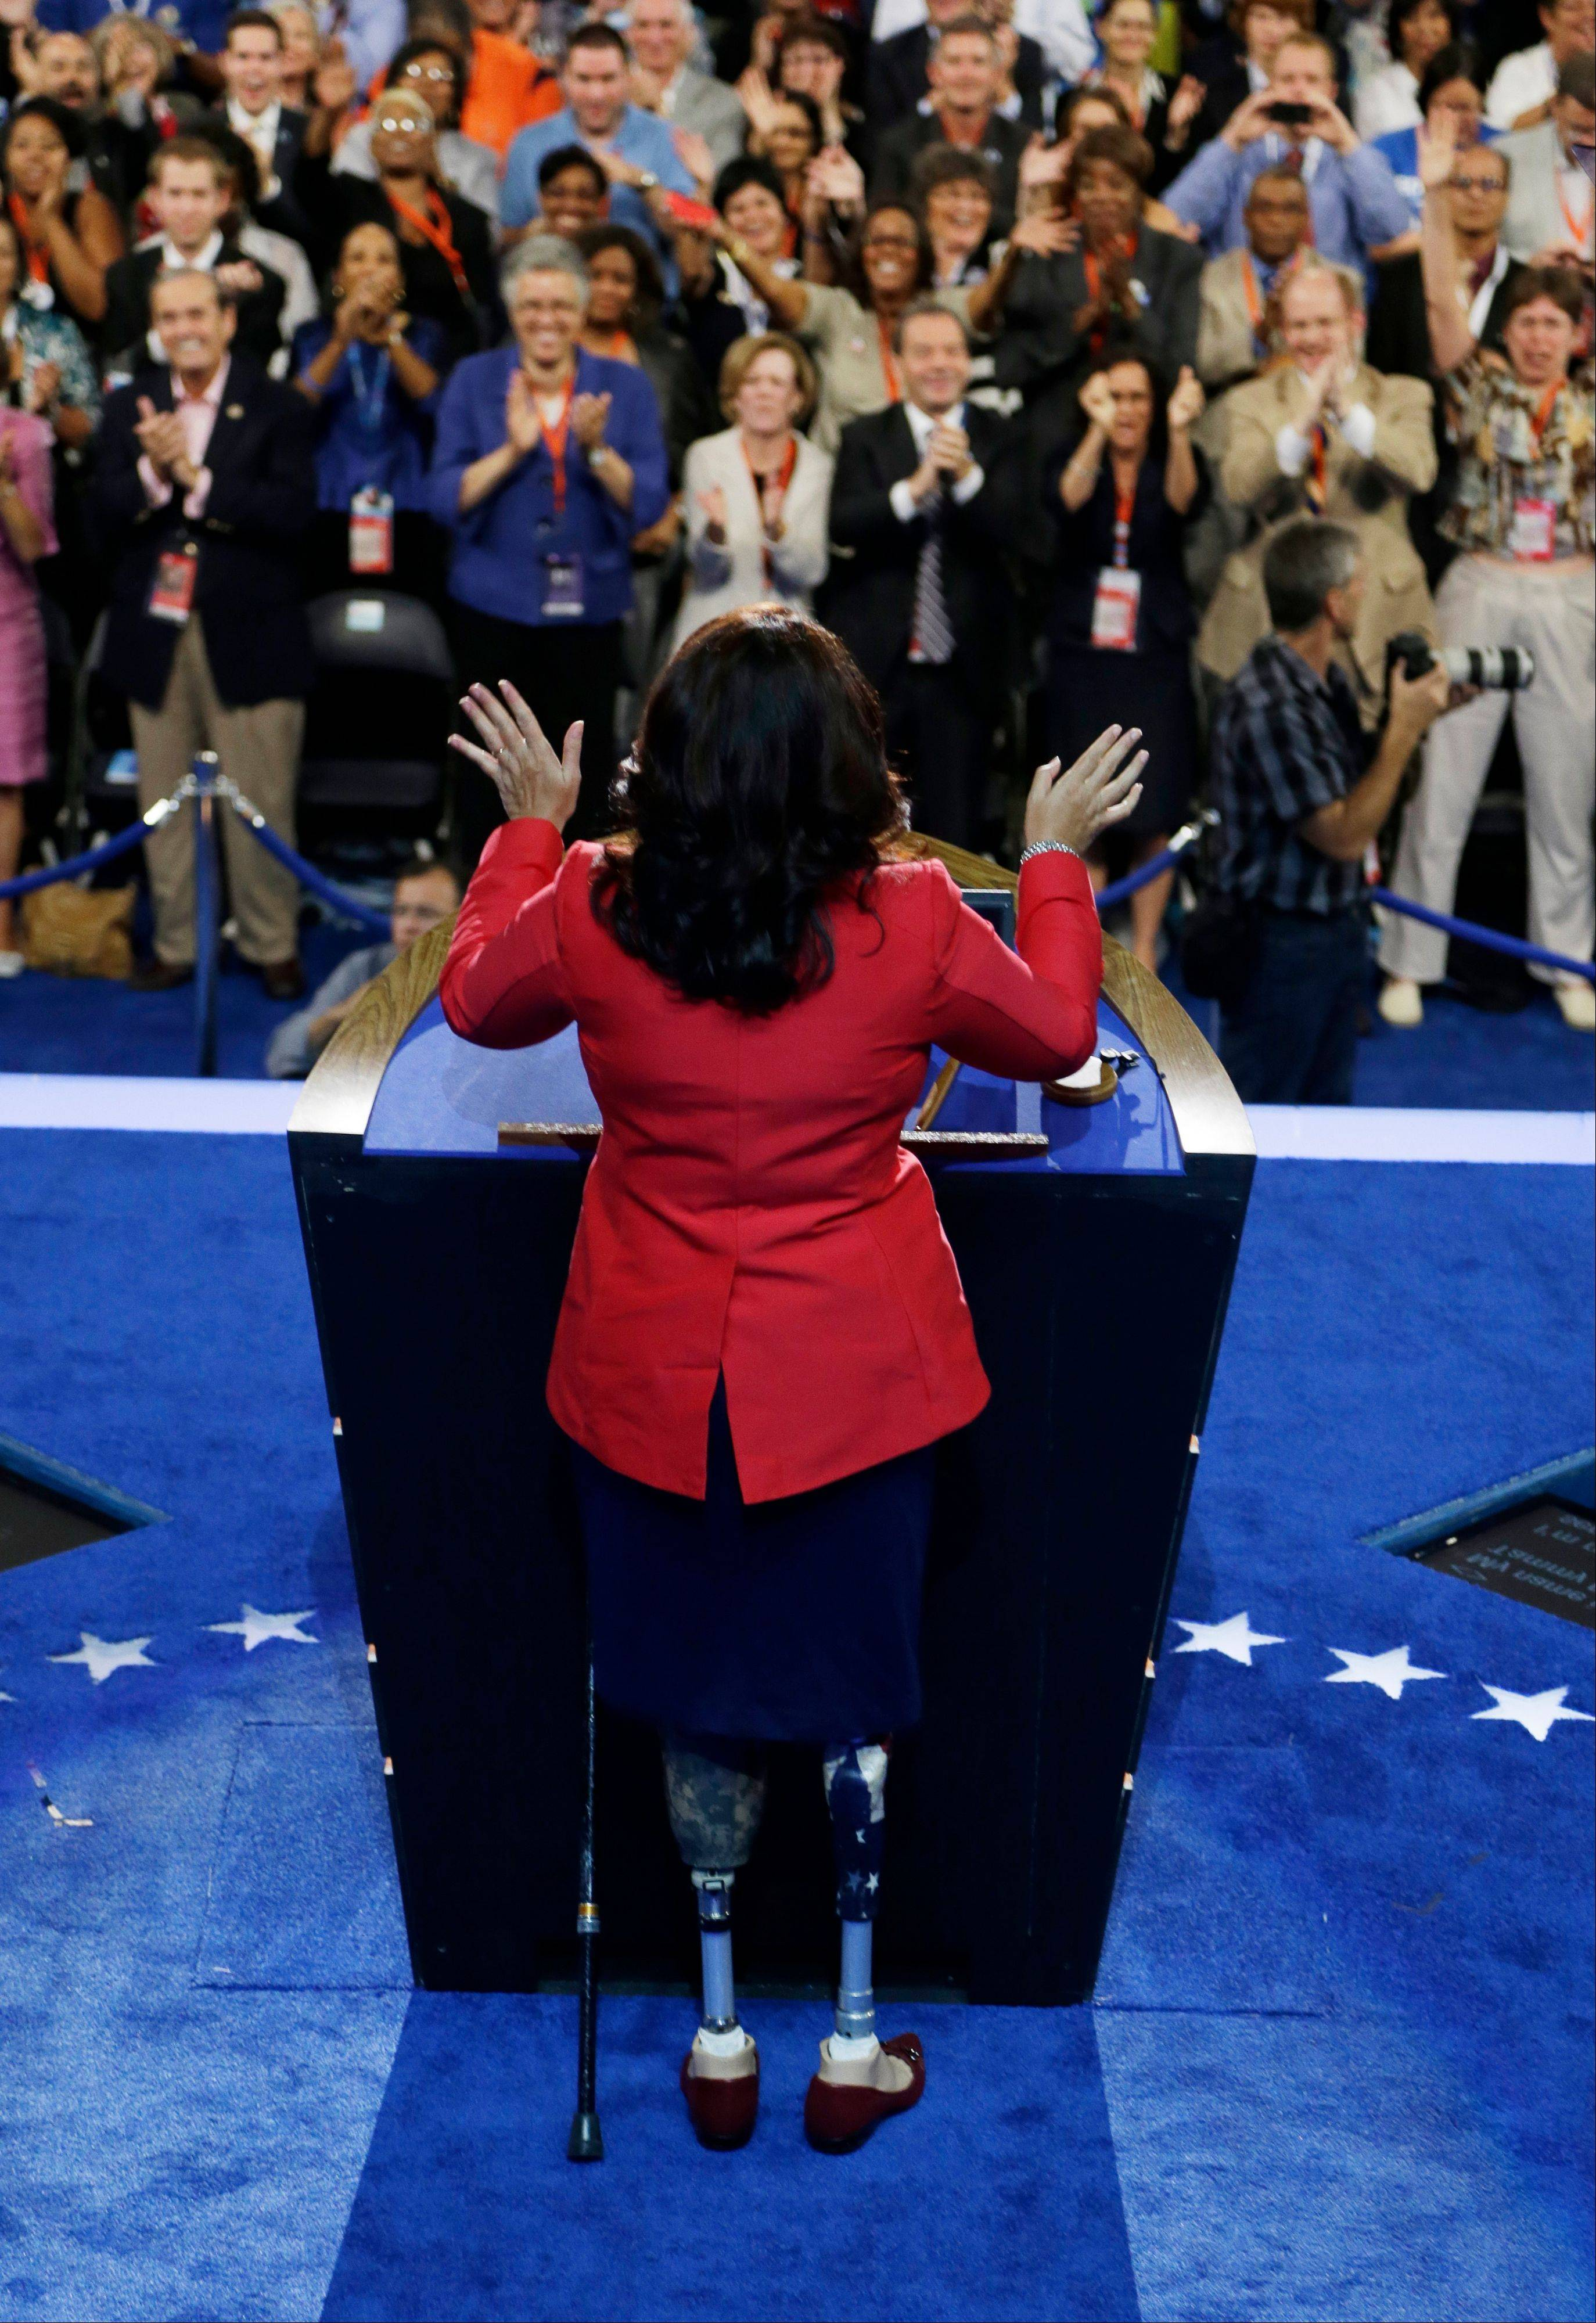 Former Assistant Secretary, U.S. Department of Veterans Affairs Tammy Duckworth speaks Tuesday to delegates at the Democratic National Convention in Charlotte, N.C.